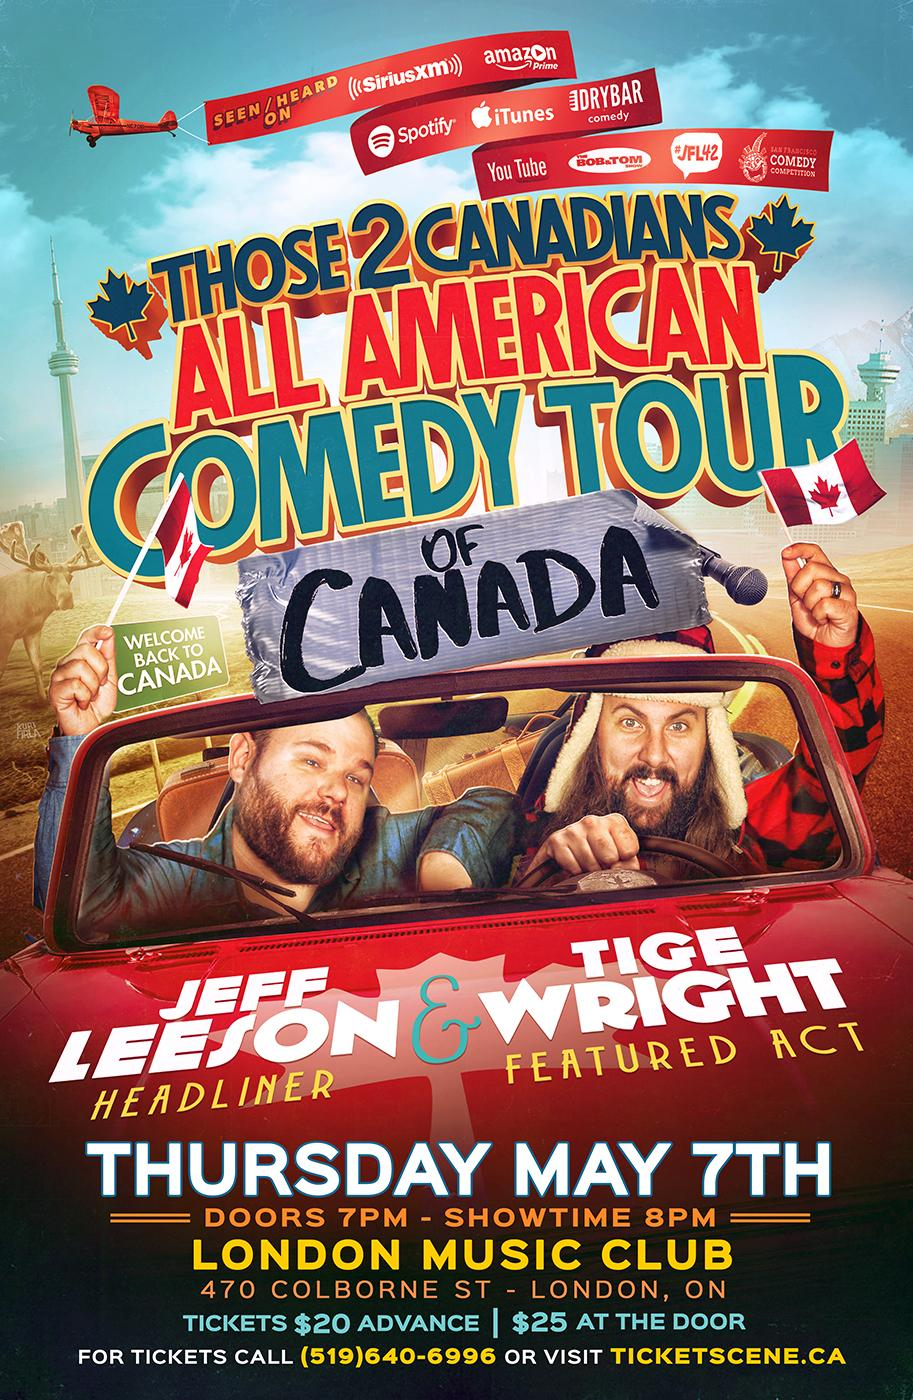 THOSE 2 CANADIANS ALL AMERICAN COMEDY TOUR OF CANADA - Jeff Leeson / Tige Wright